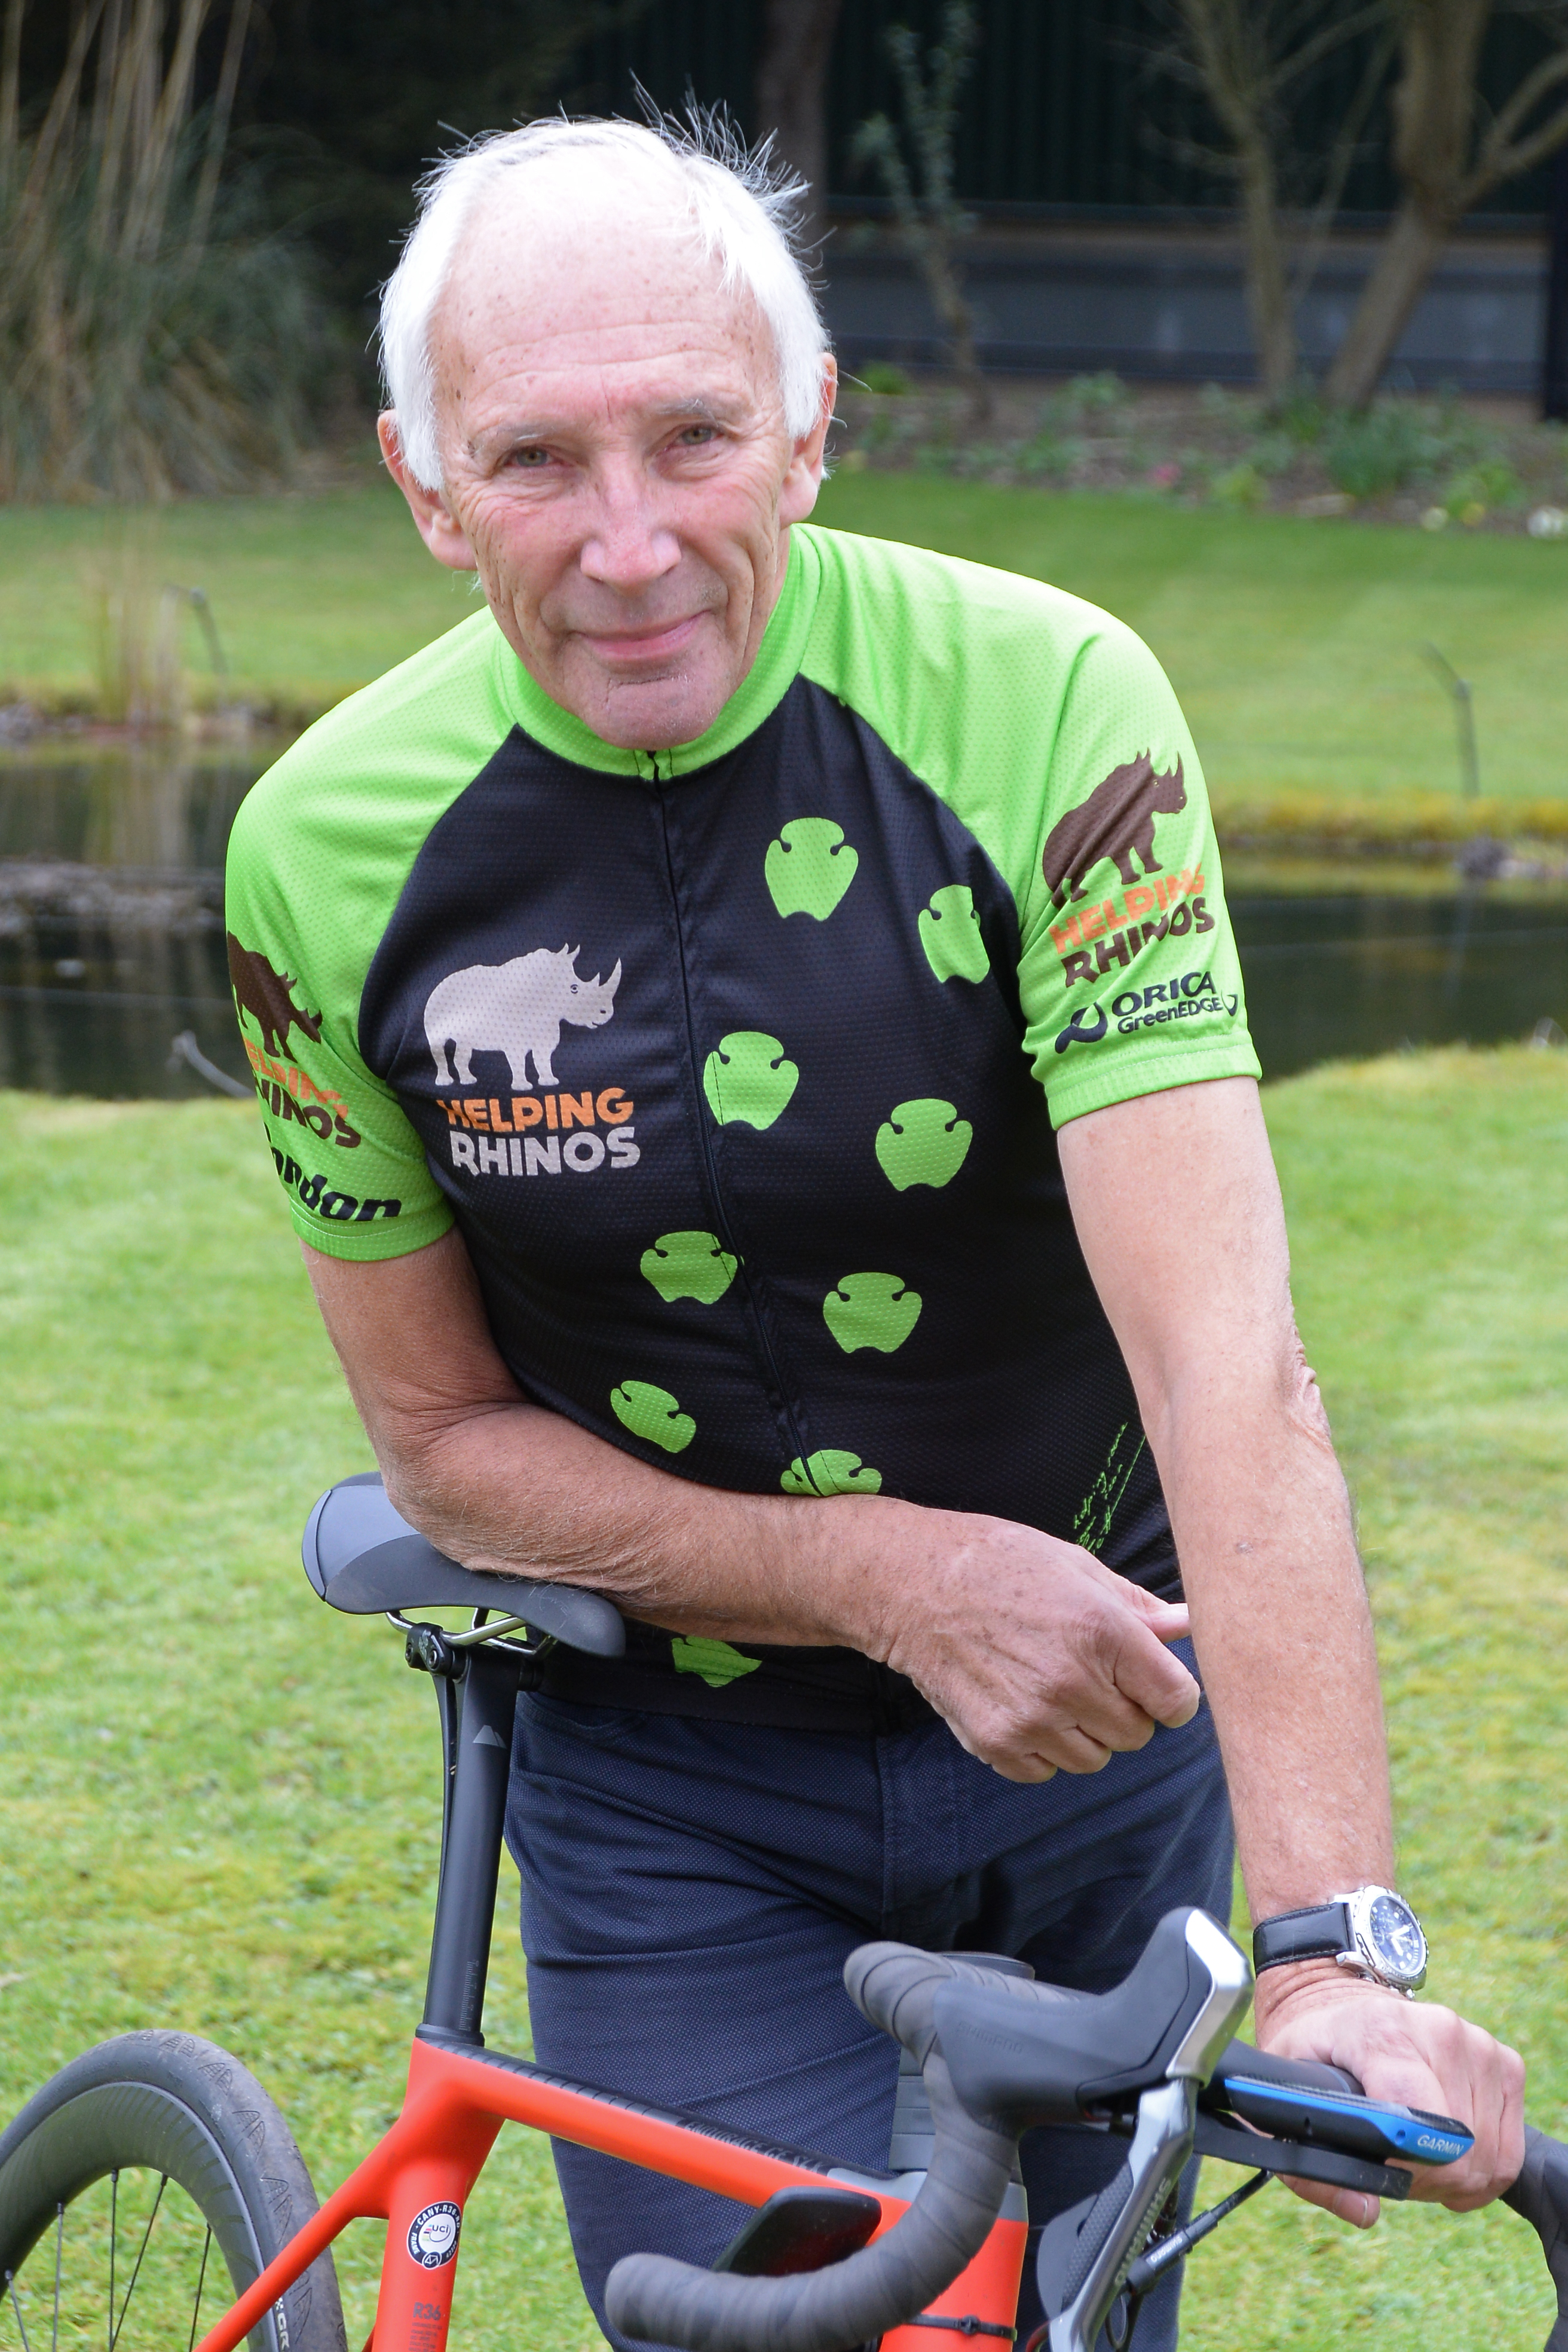 Phil Liggett MBE